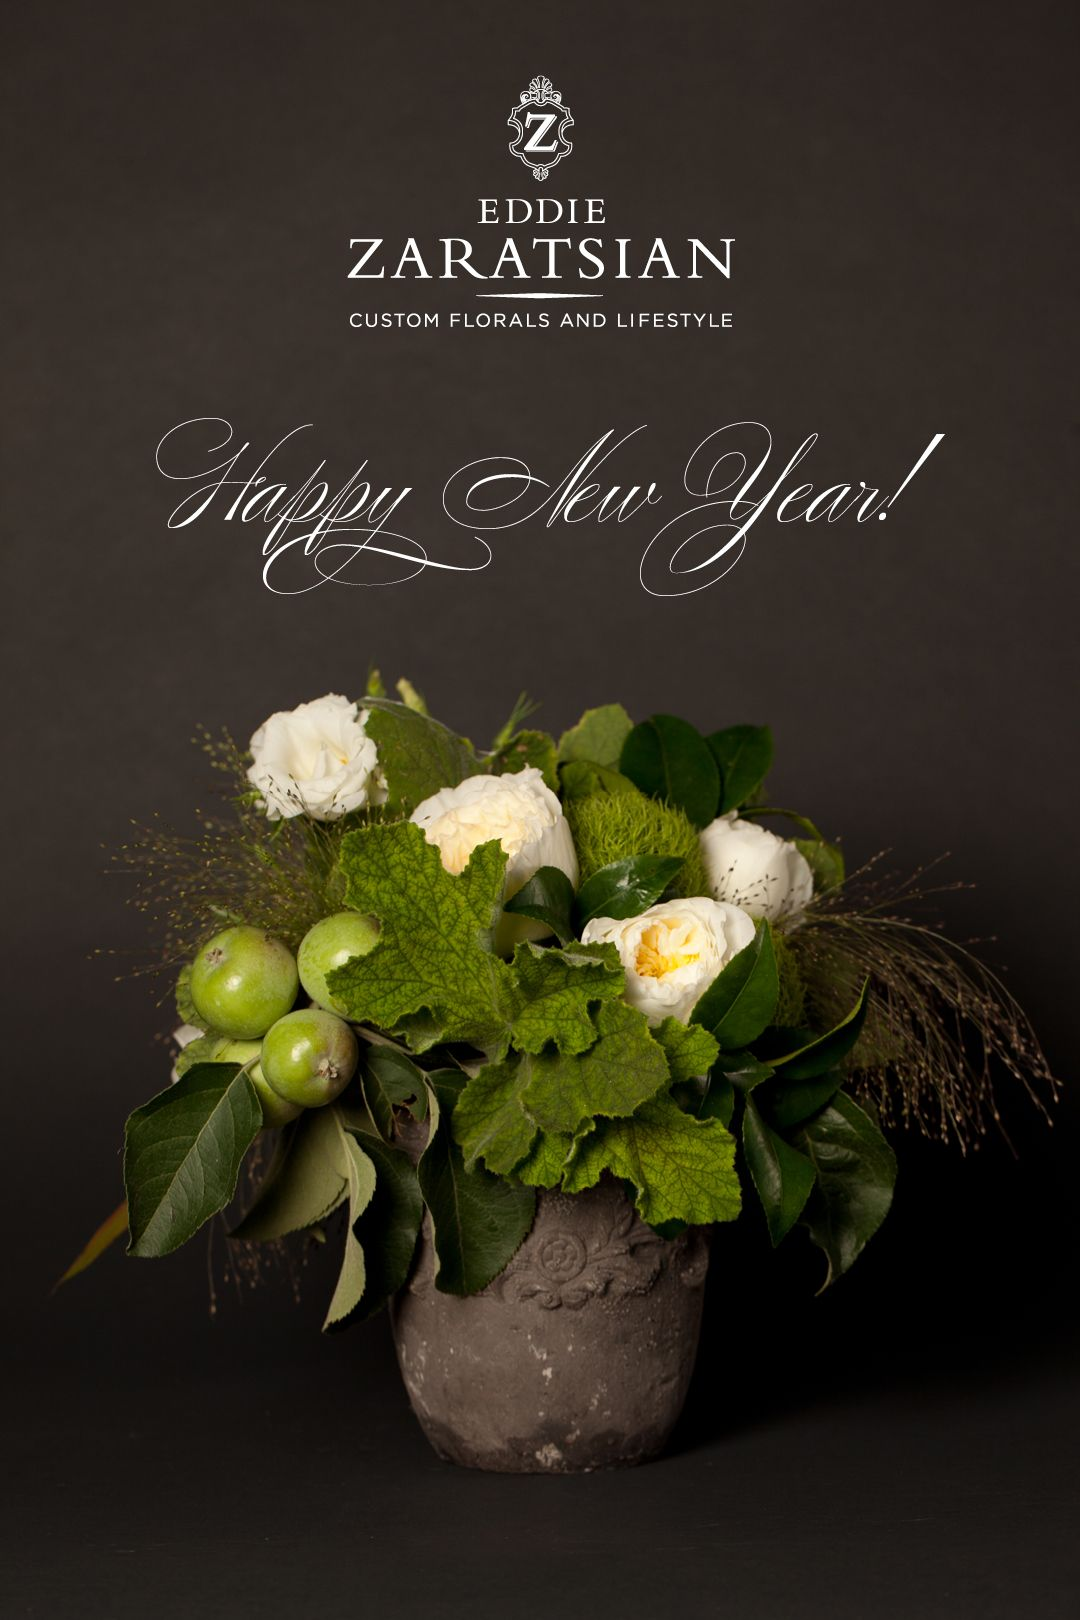 Eddie Zaratsian Floral Boutique Happy New Year Flower Designs